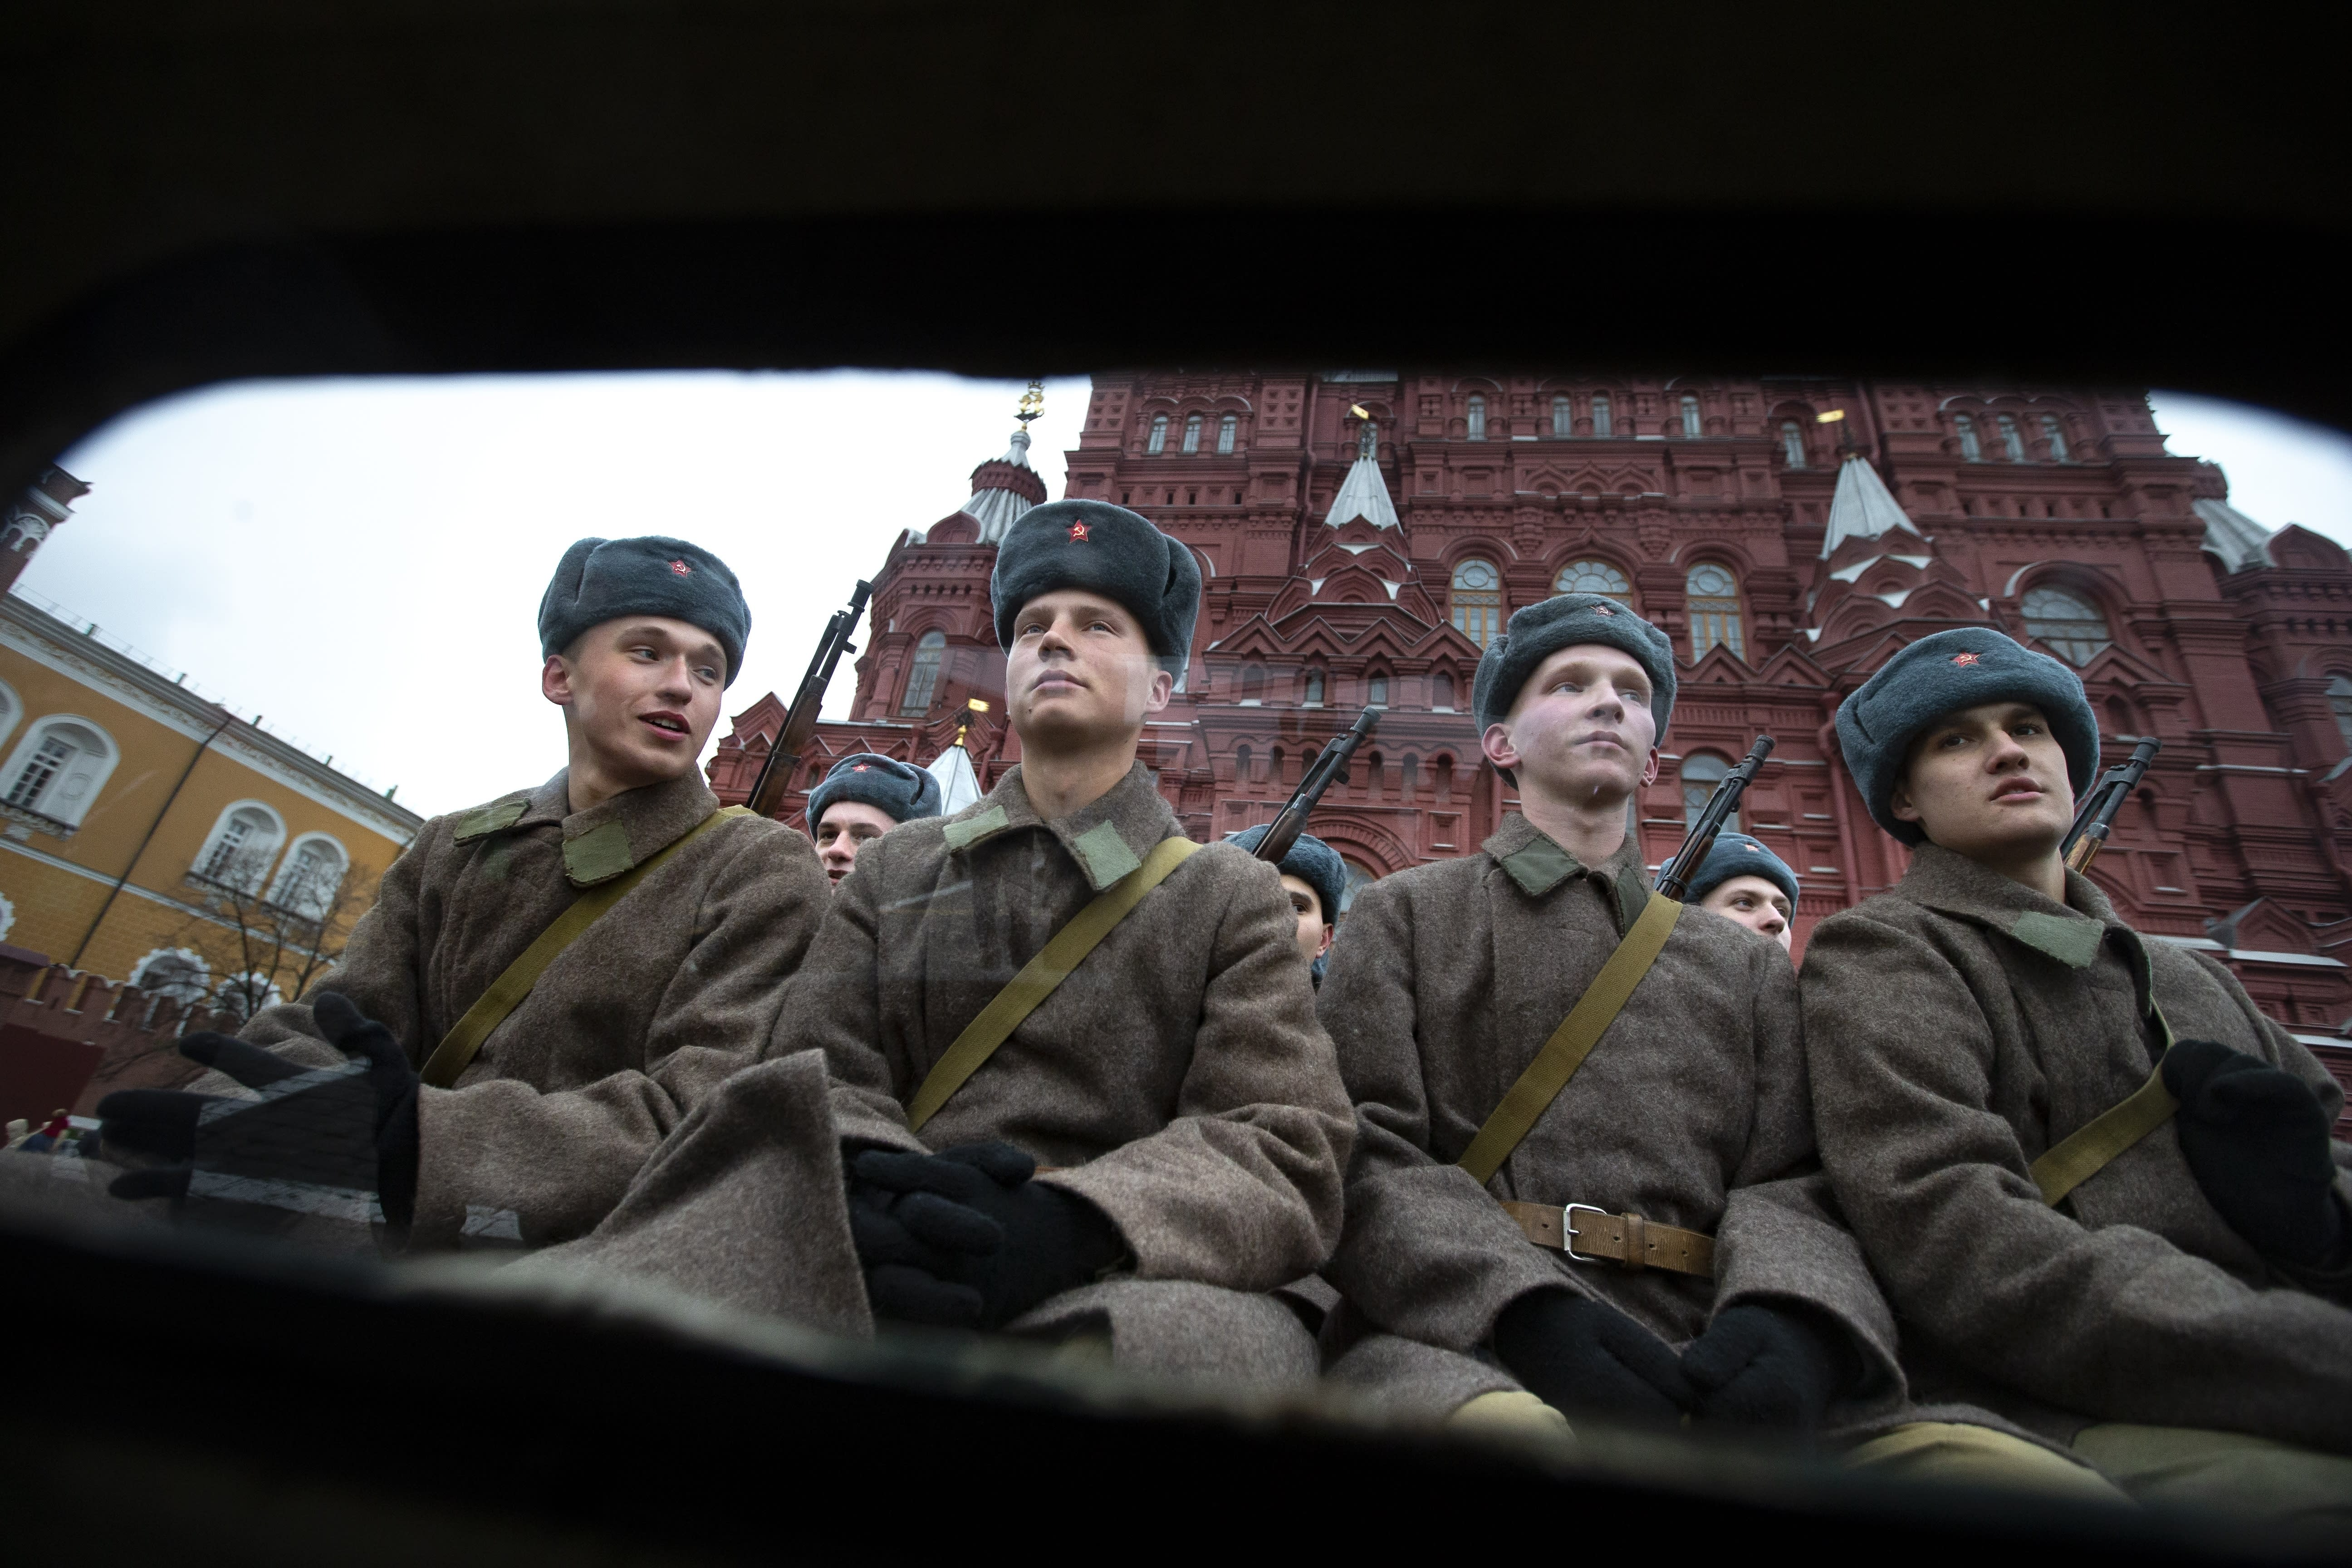 Russian soldiers dressed in Red Army World War II winter uniforms sit in a truck as they wait to take a part in a reconstruction of a World War II-era parade in Moscow's Red Square, Russia, Thursday, Nov. 7, 2019. The Nov. 7, 1941 parade saw Red Army soldiers move directly to the front line in the Battle of Moscow, becoming a symbol of Soviet valor and tenacity in the face of overwhelming odds. (AP Photo/Alexander Zemlianichenko)